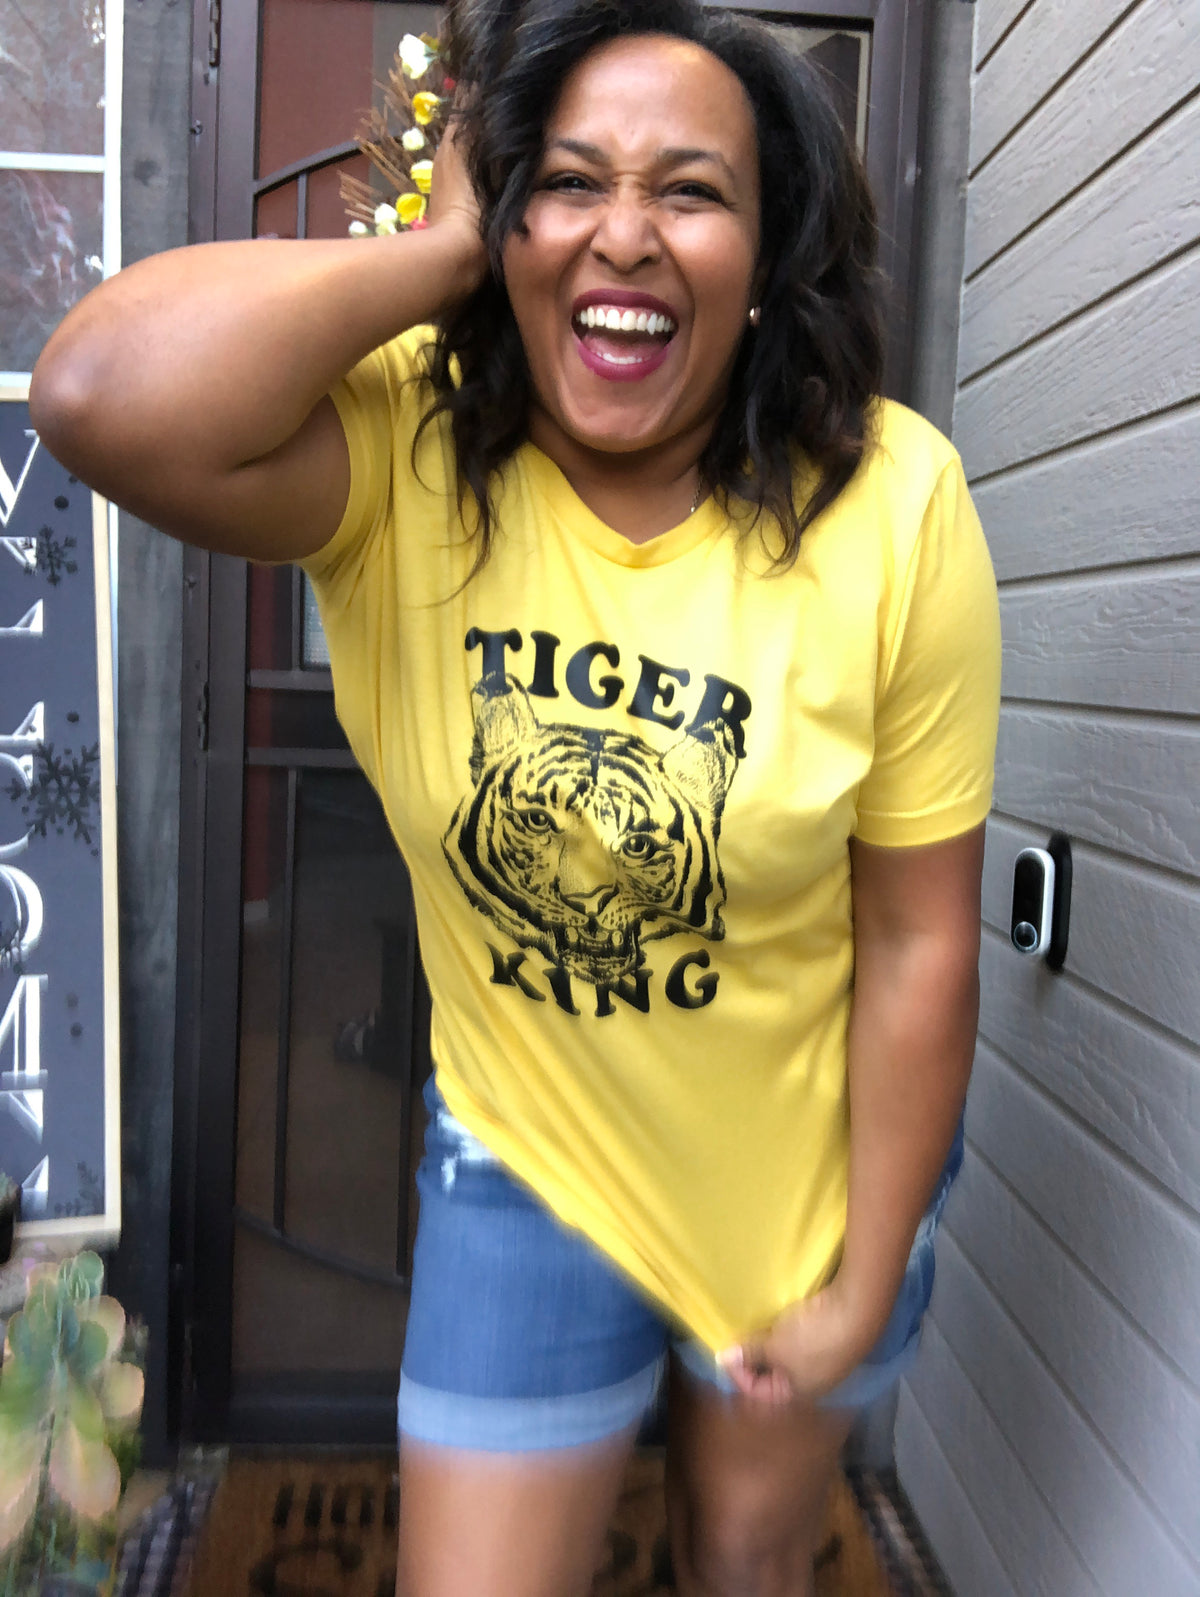 Tiger King Graphic Tee